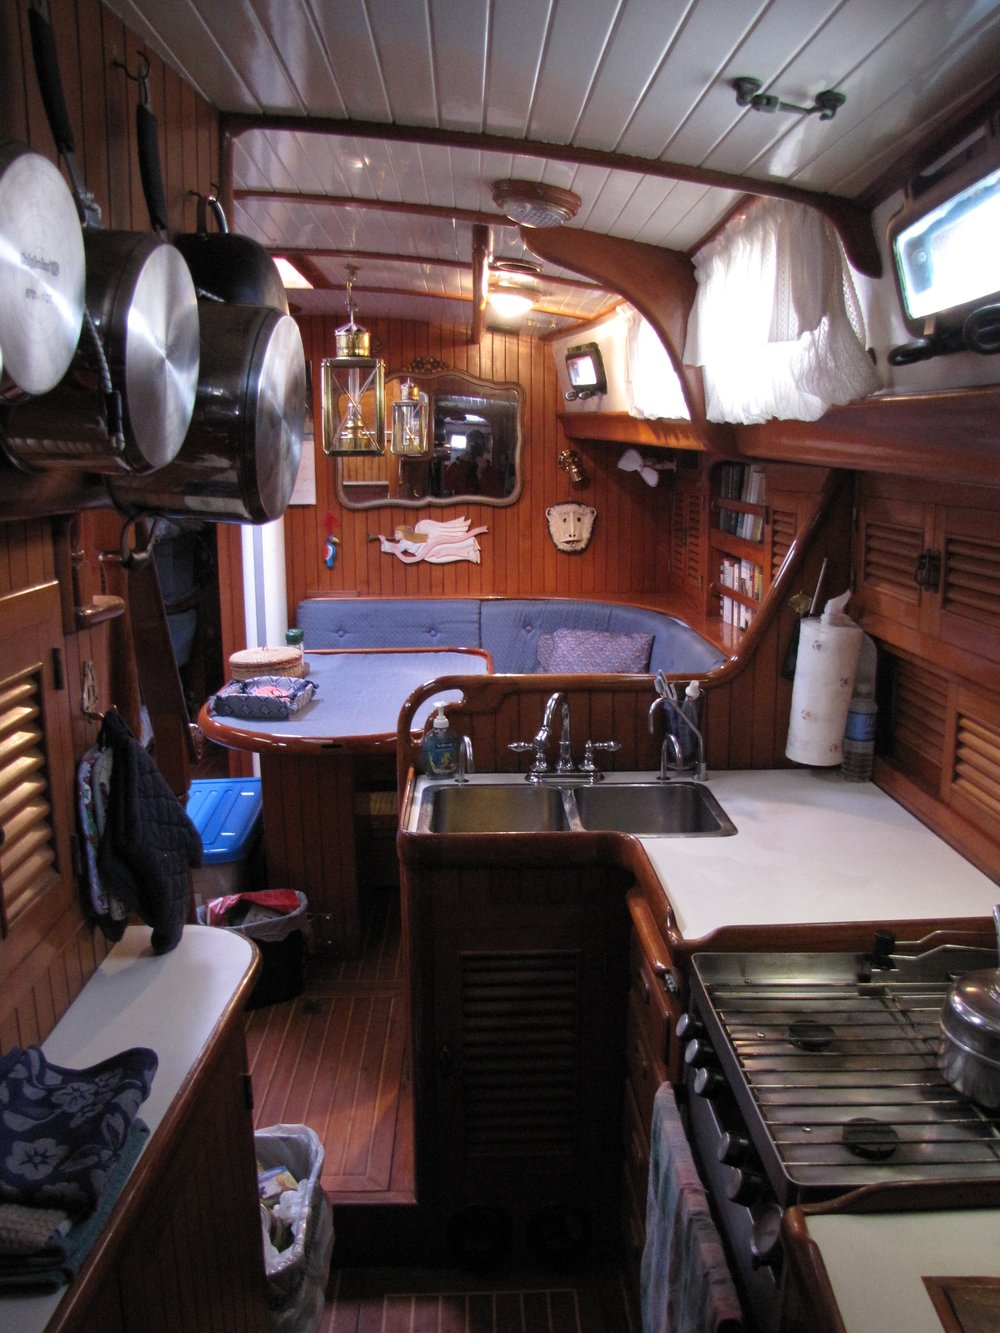 Galley view, looking forward